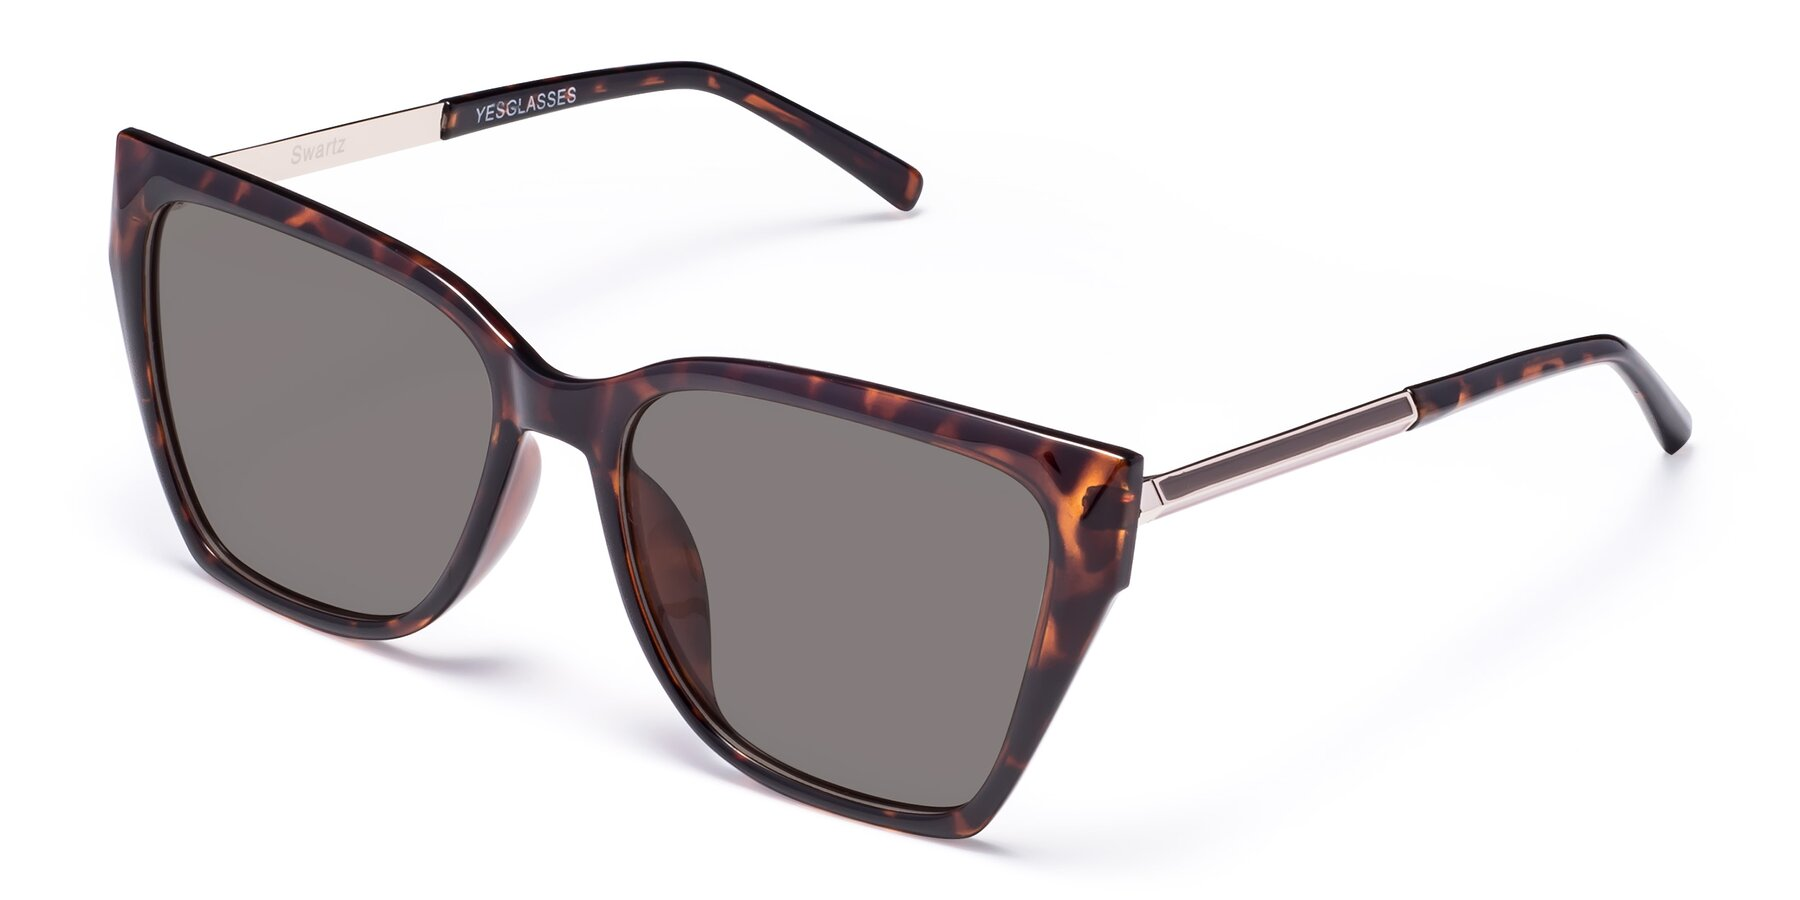 Angle of Swartz in Tortoise with Medium Gray Tinted Lenses